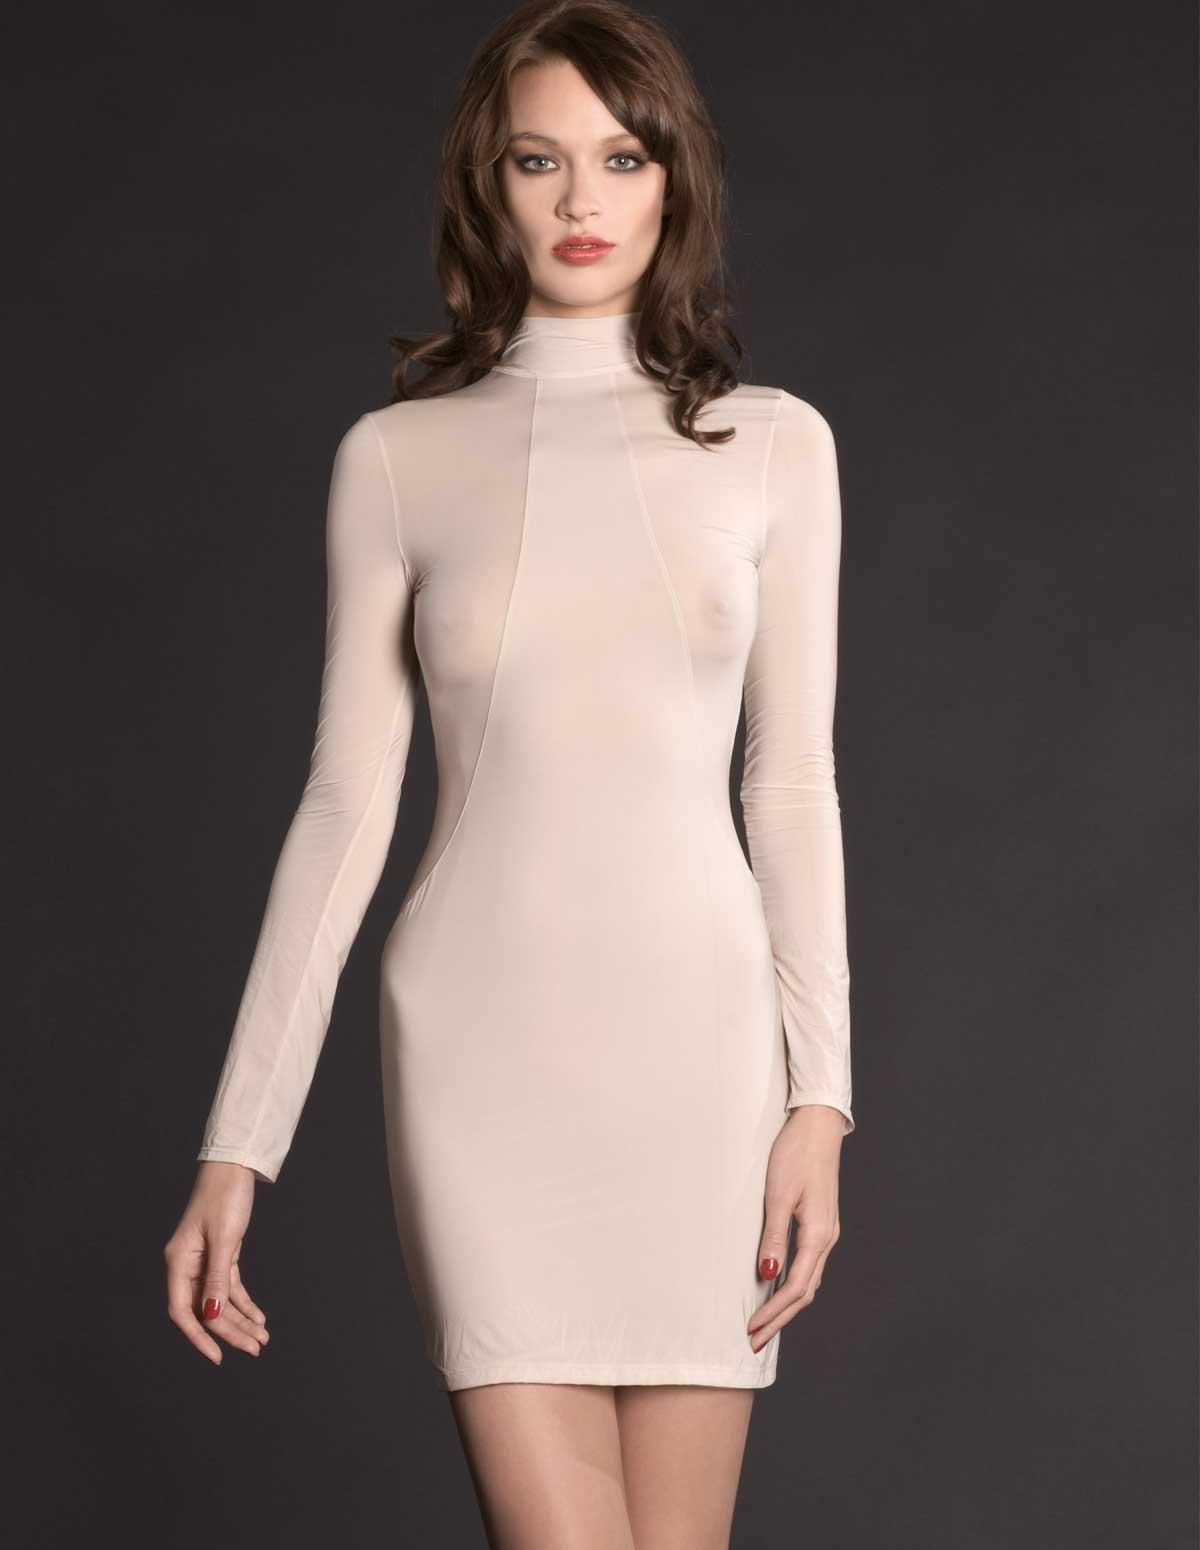 Basic Instinct Dress